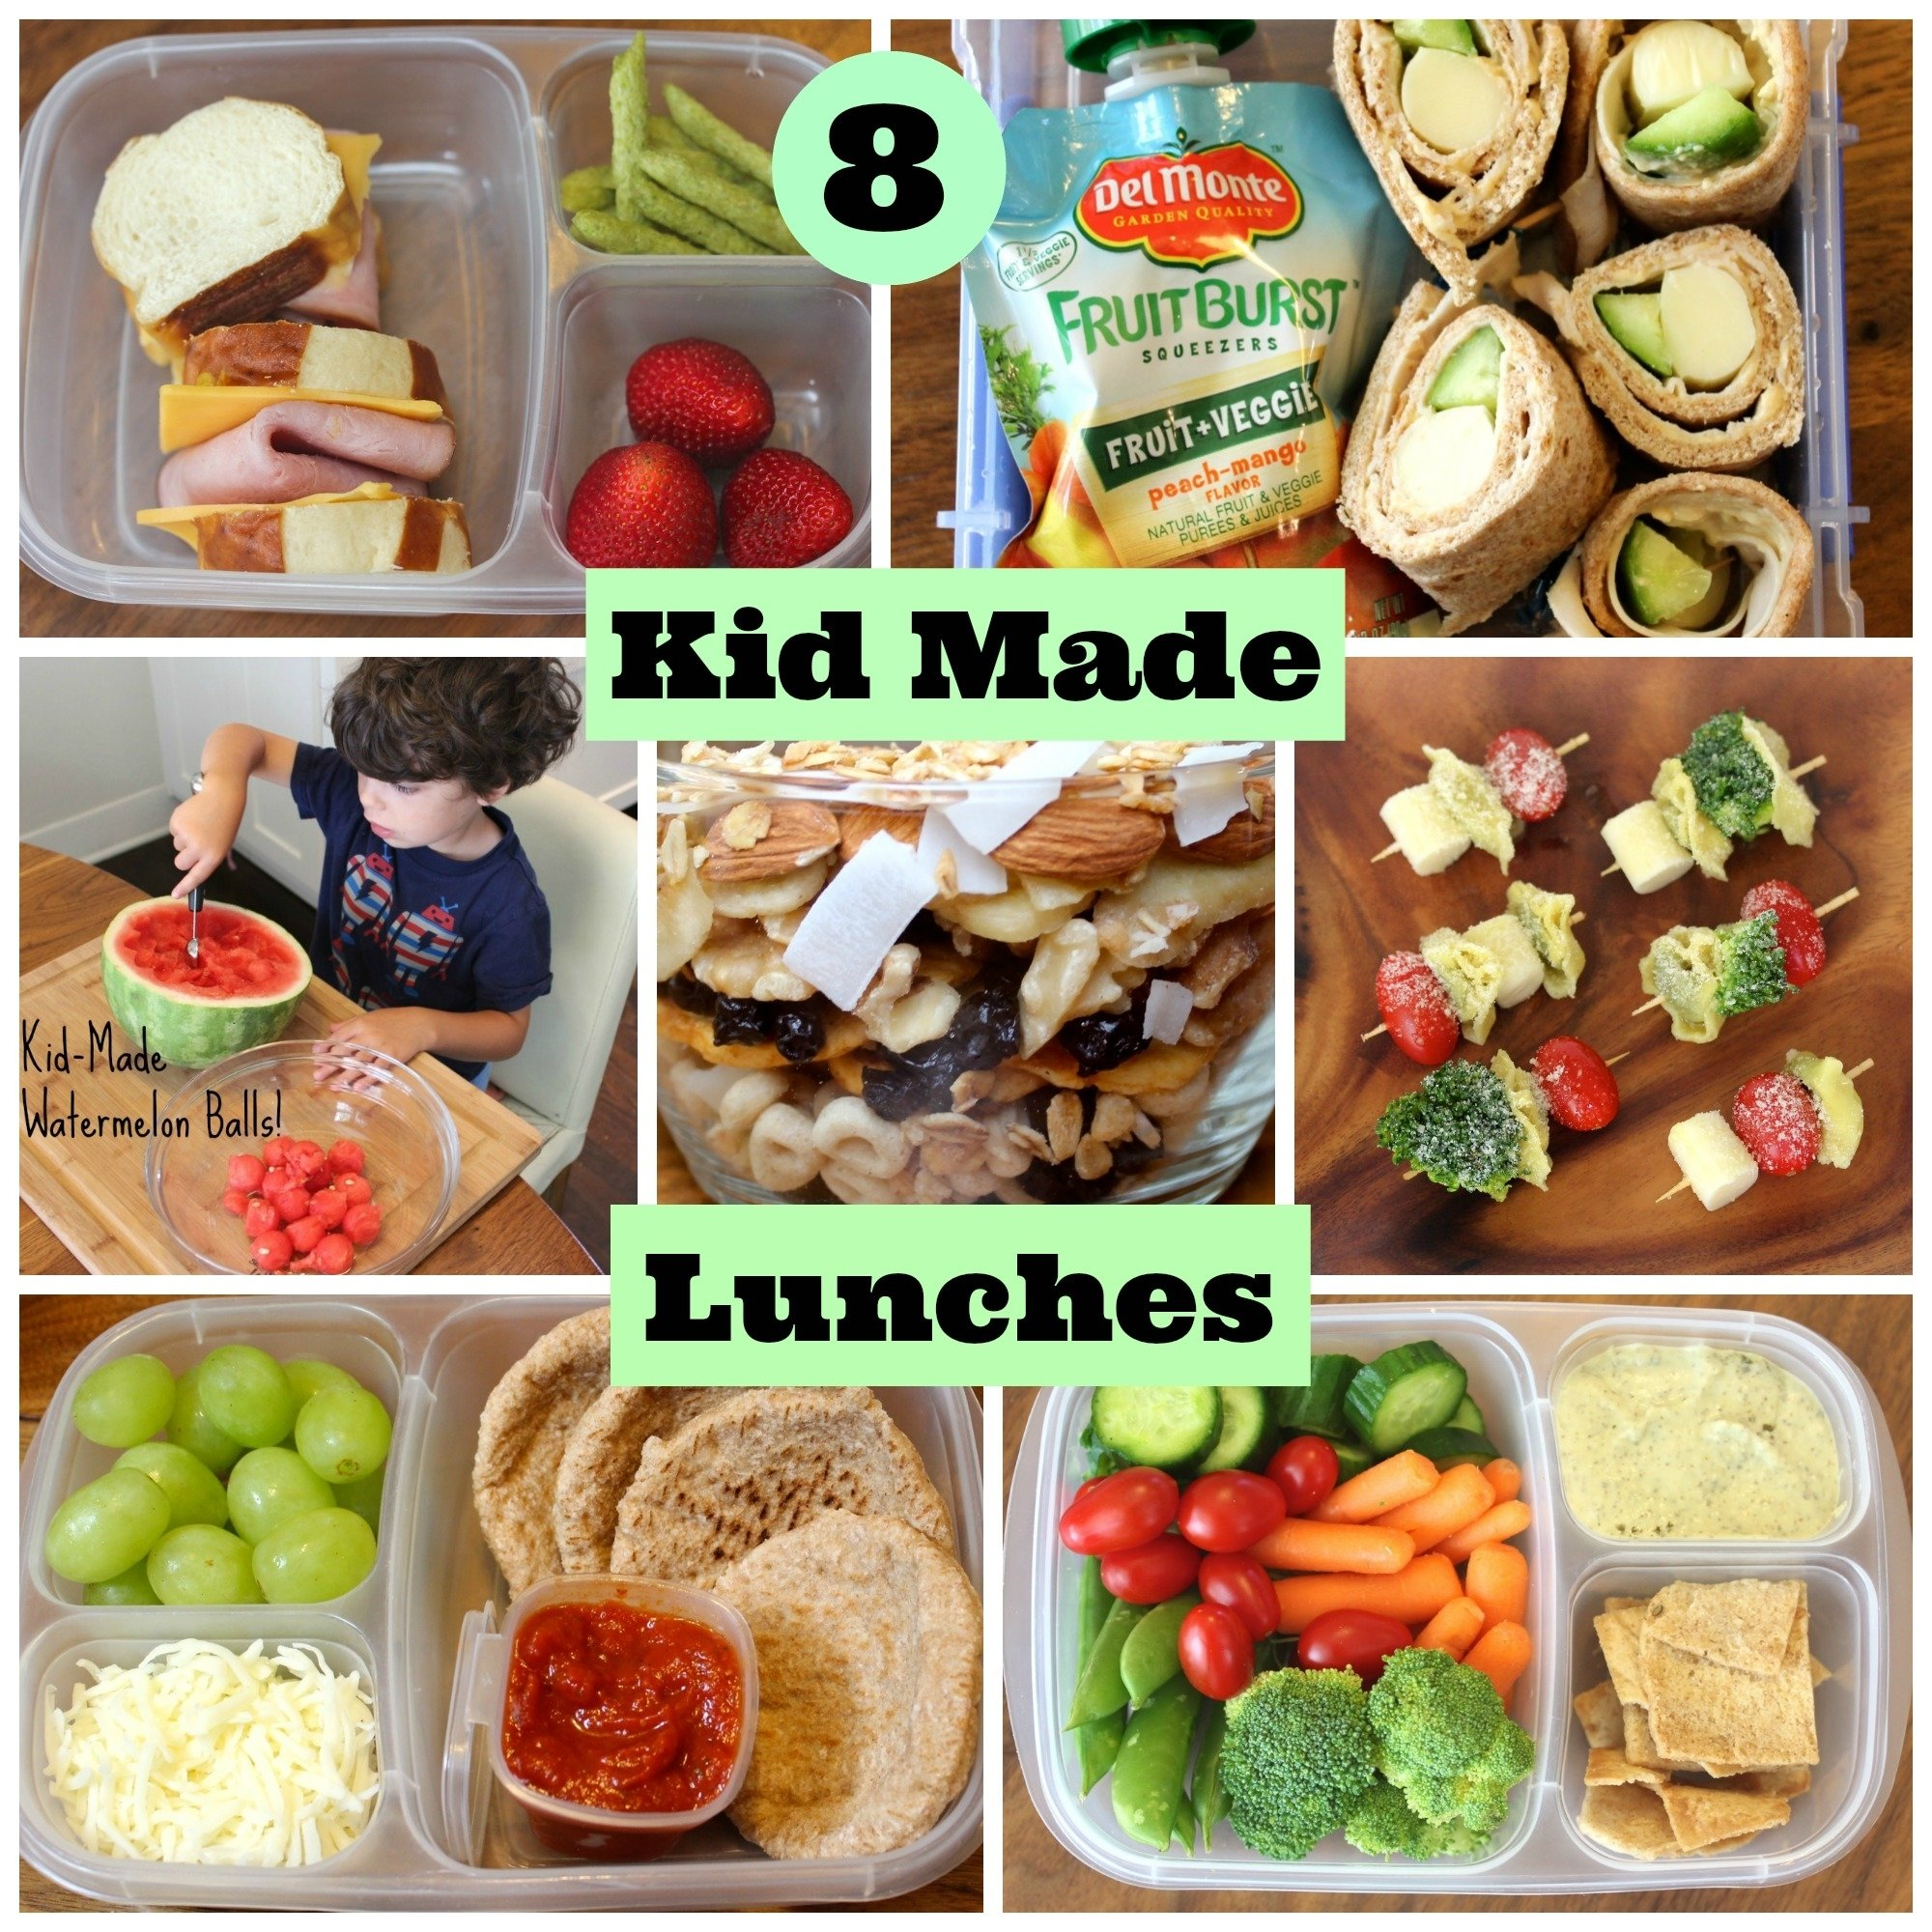 10 Nice Ideas For Kids Lunches For School 4 healthy school lunches your kids can make themselves babble 4 2021